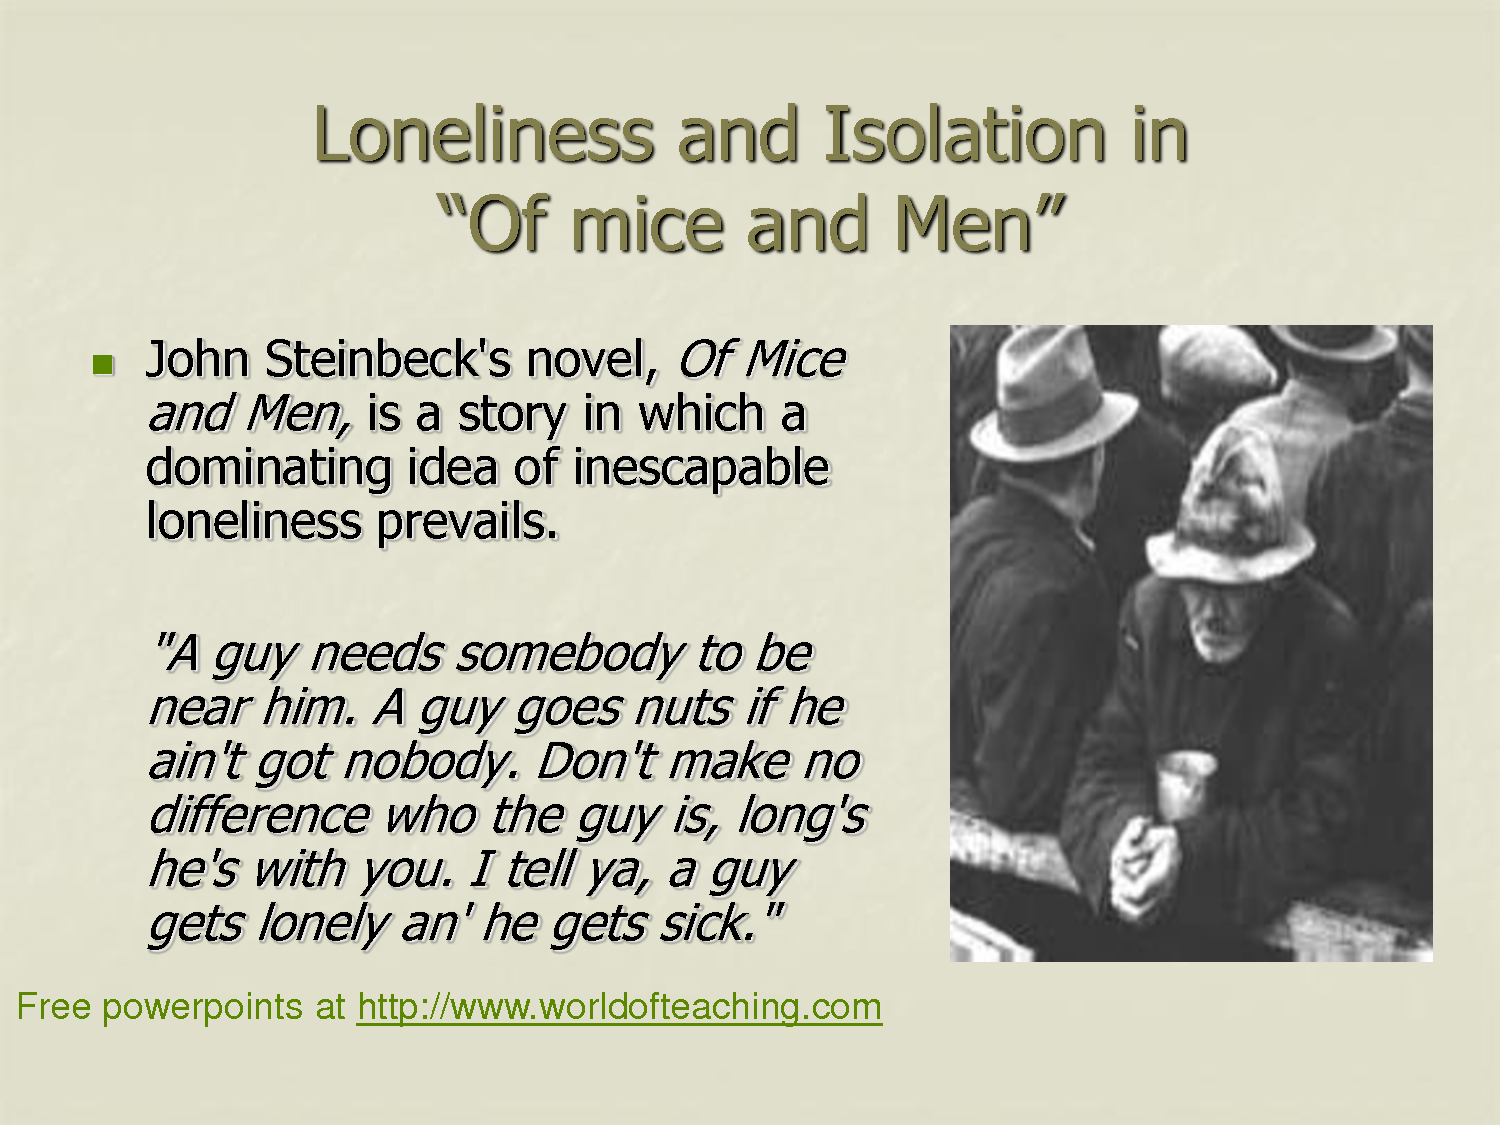 Mice and men role of